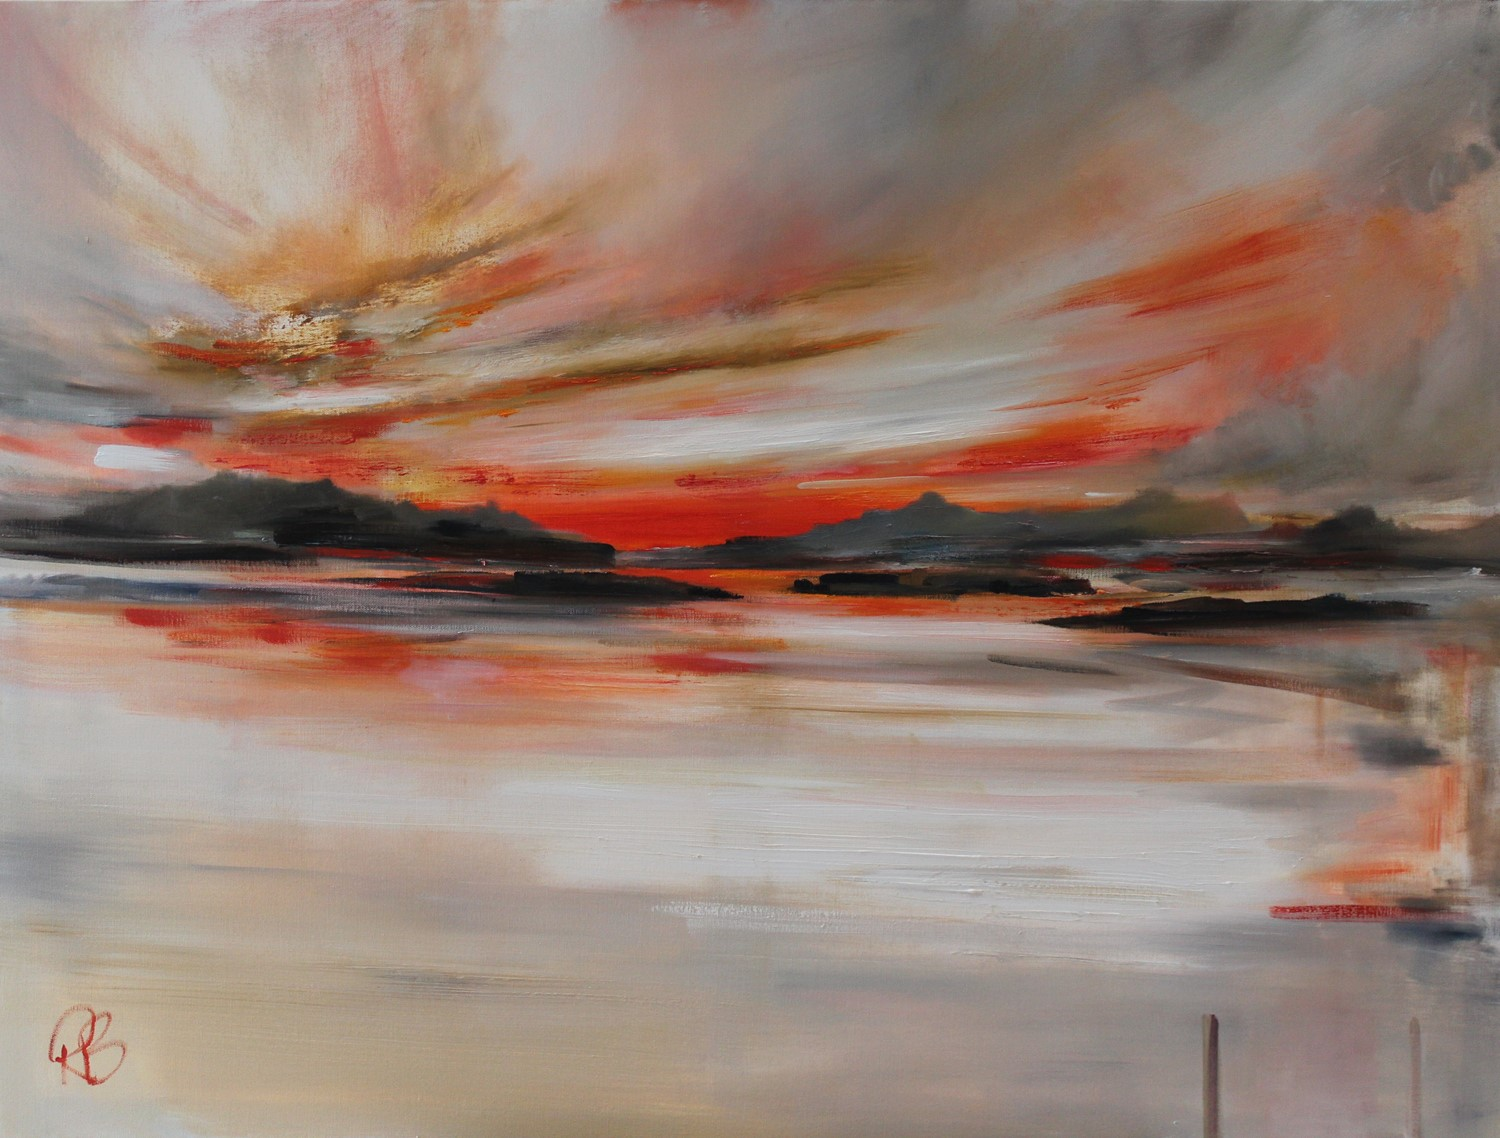 'Sunset Sky over the Isles' by artist Rosanne Barr